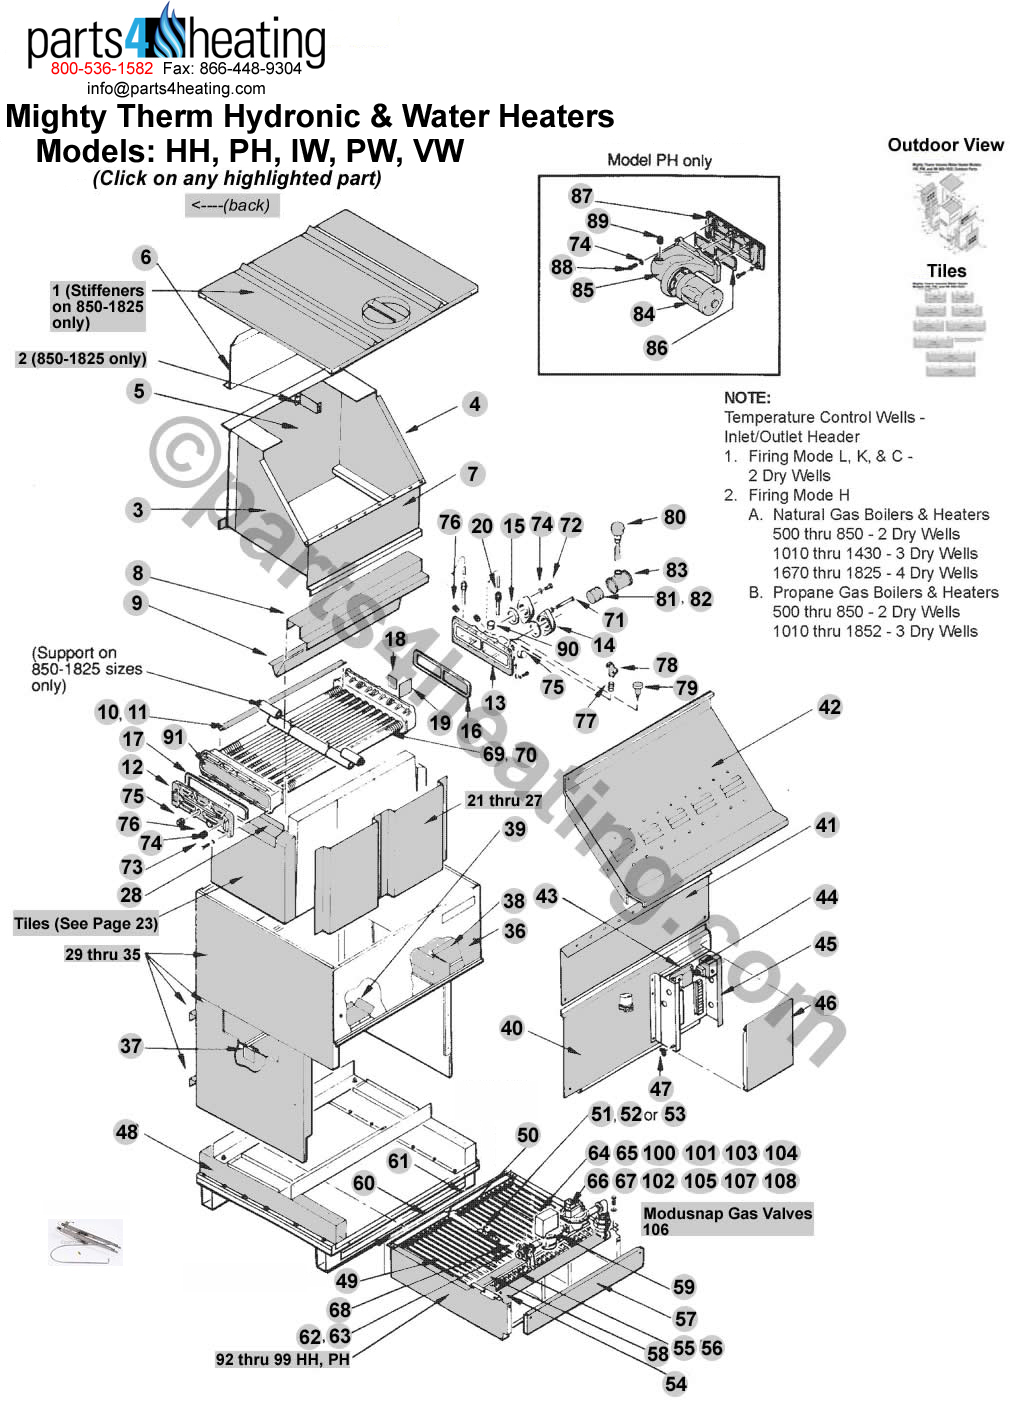 automotive wiring diagrams pdf with Burnham Boiler Wiring Diagram on 2014 Nissan Rogue Power Window Wiring Diagram besides Burnham Boiler Wiring Diagram likewise TM 10 4320 351 14 265 as well Woodworking Shop Designs Teds Woodoperating Plans Who Is Ted Mcgrath furthermore System Circuit Wiring Diagram Of 1997 Hyundai Accent.